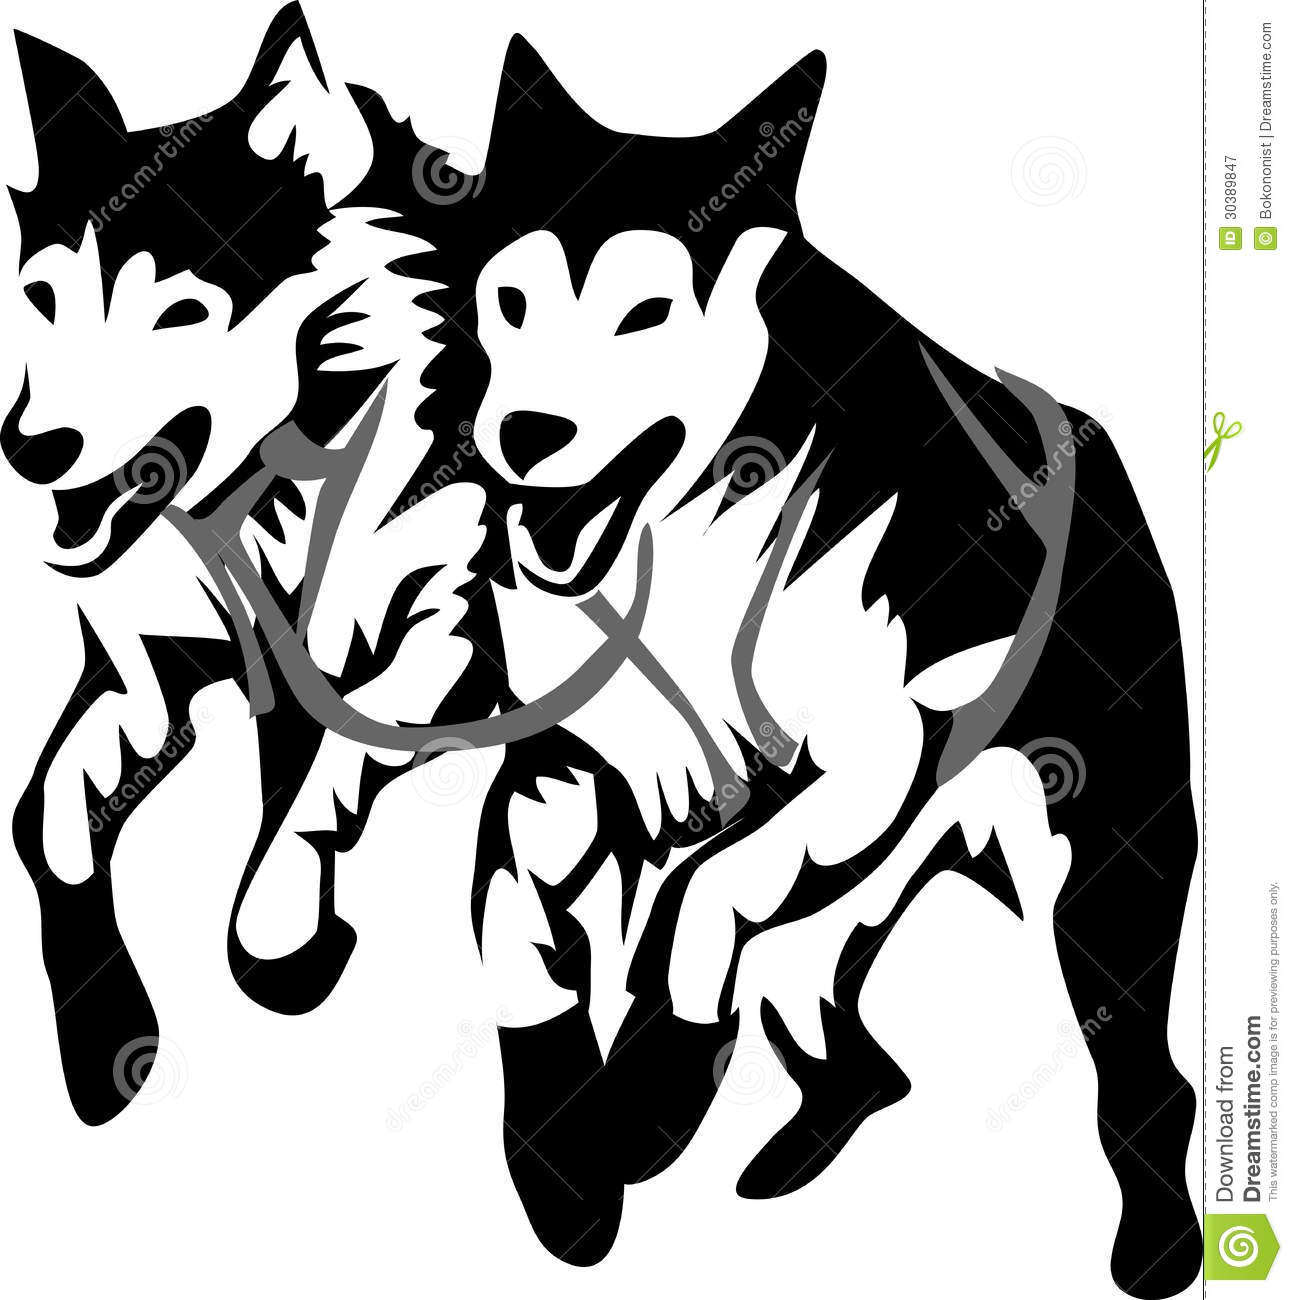 Iditarod Stock Illustrations.